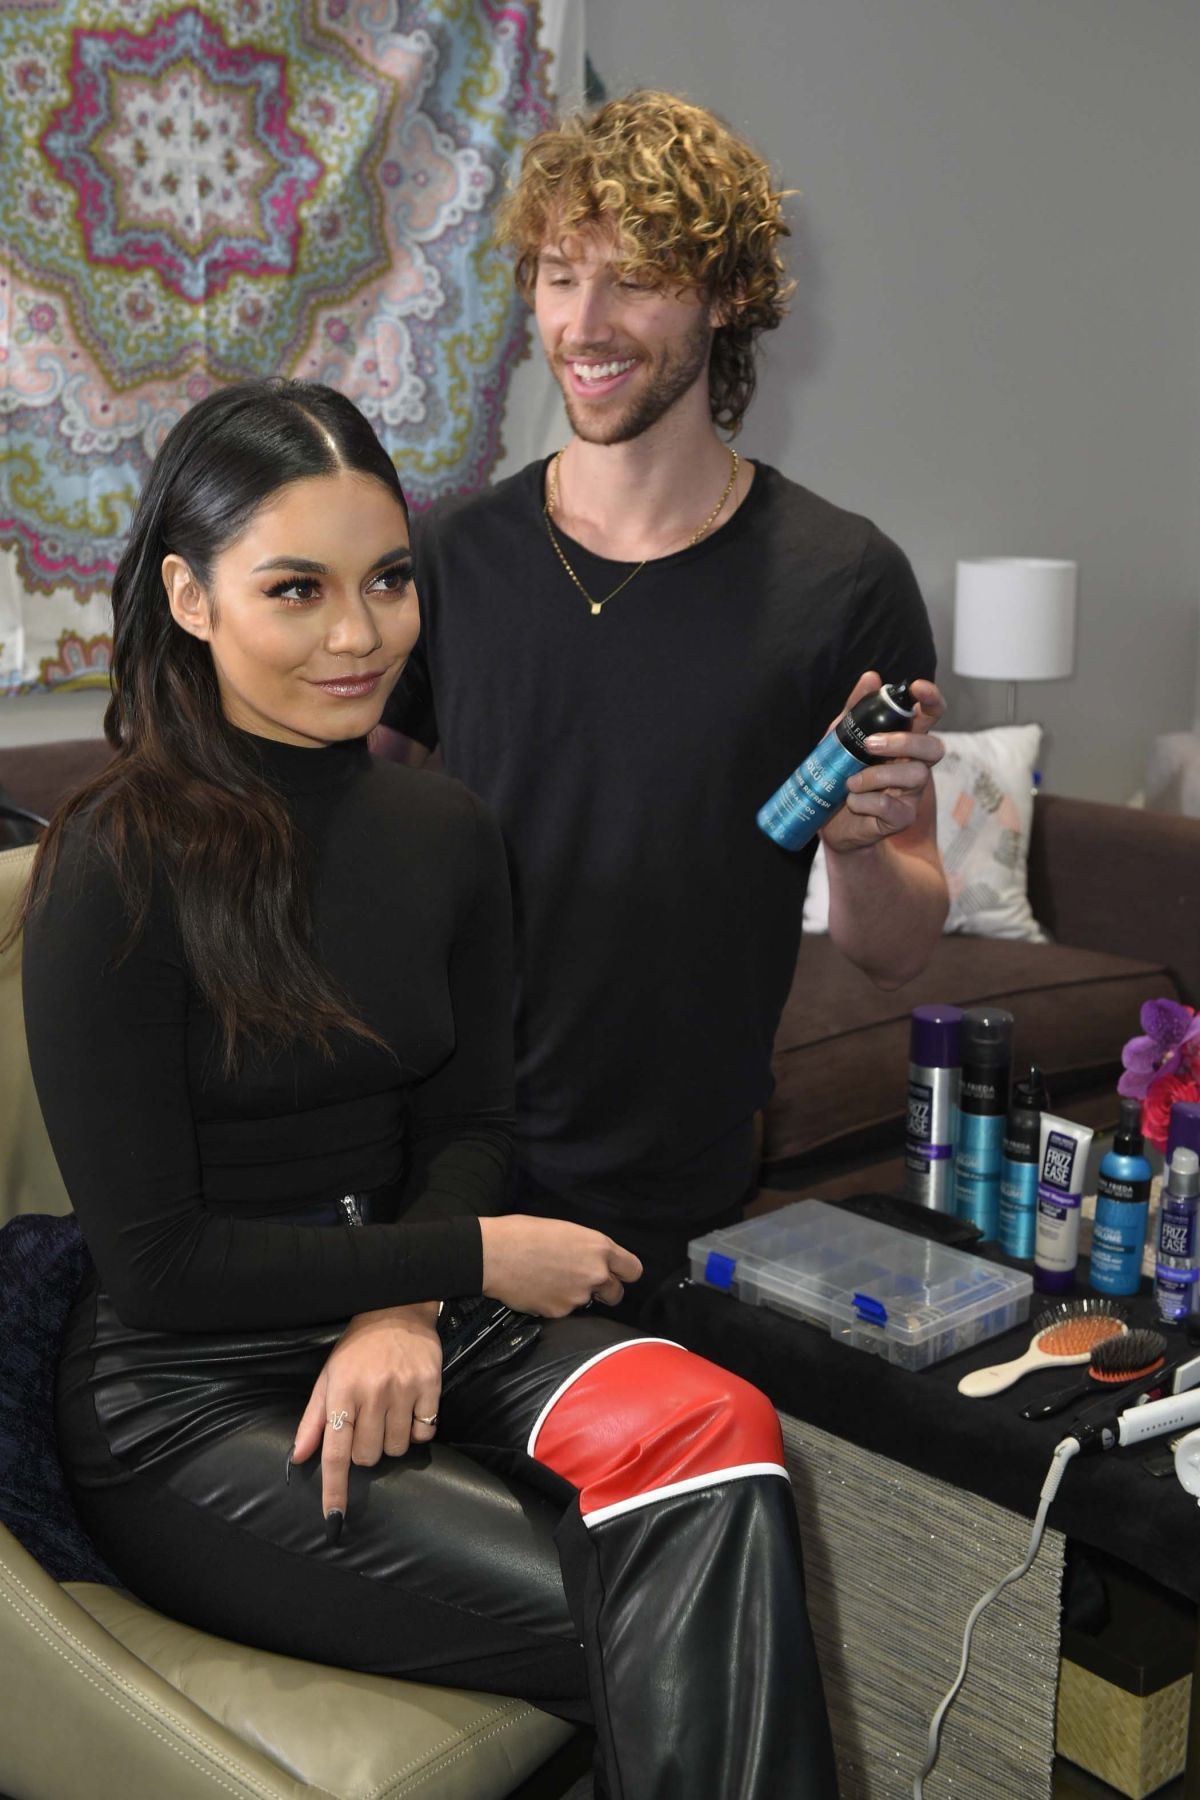 Vanessa Hudgens getting final touches backstage at CBS Studios in Los Angeles